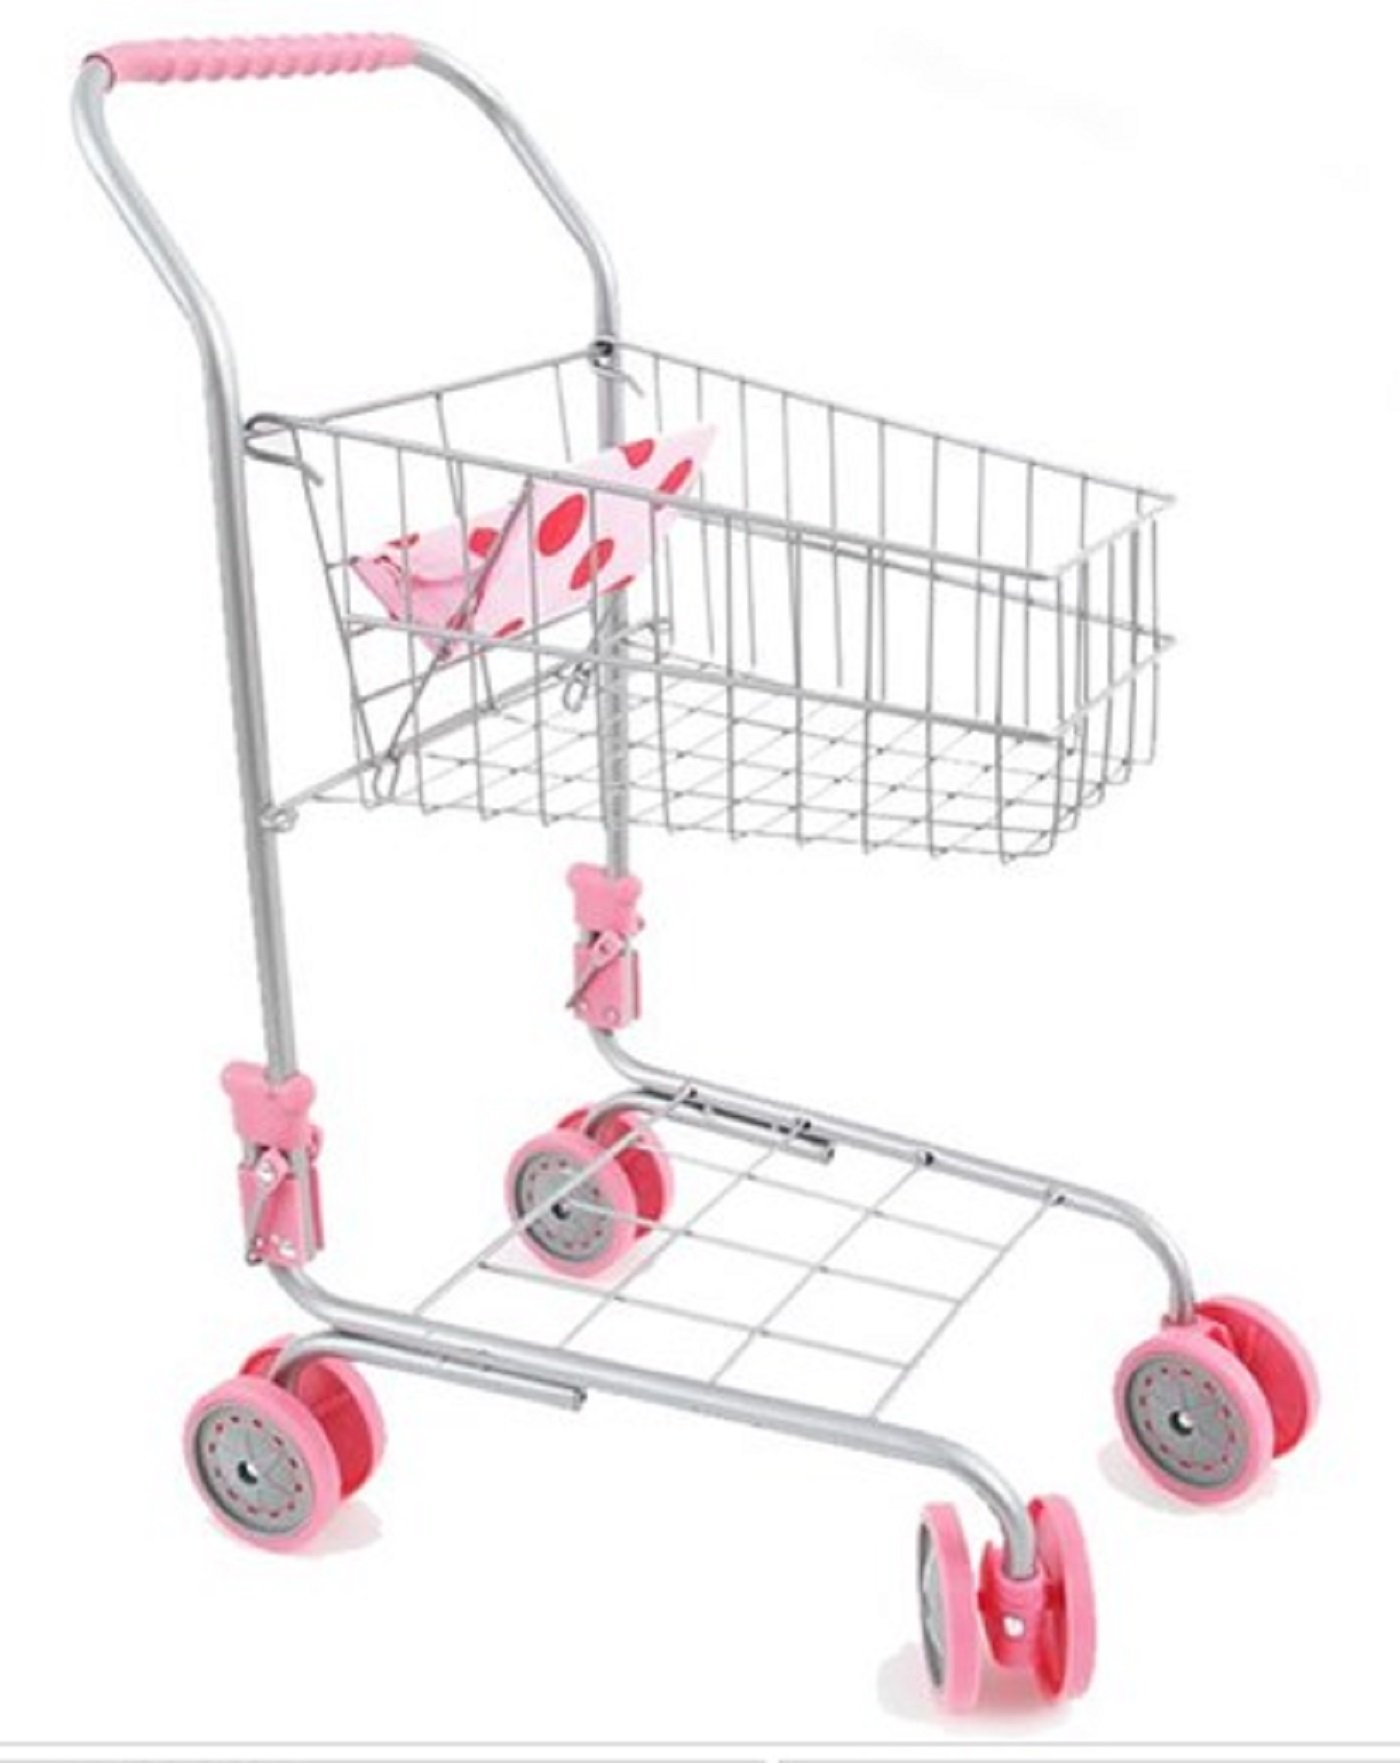 Melobo Toy Shopping Cart Foldable Play Set Boy Toy Girl Toy Shopping Roll Play 22.8''